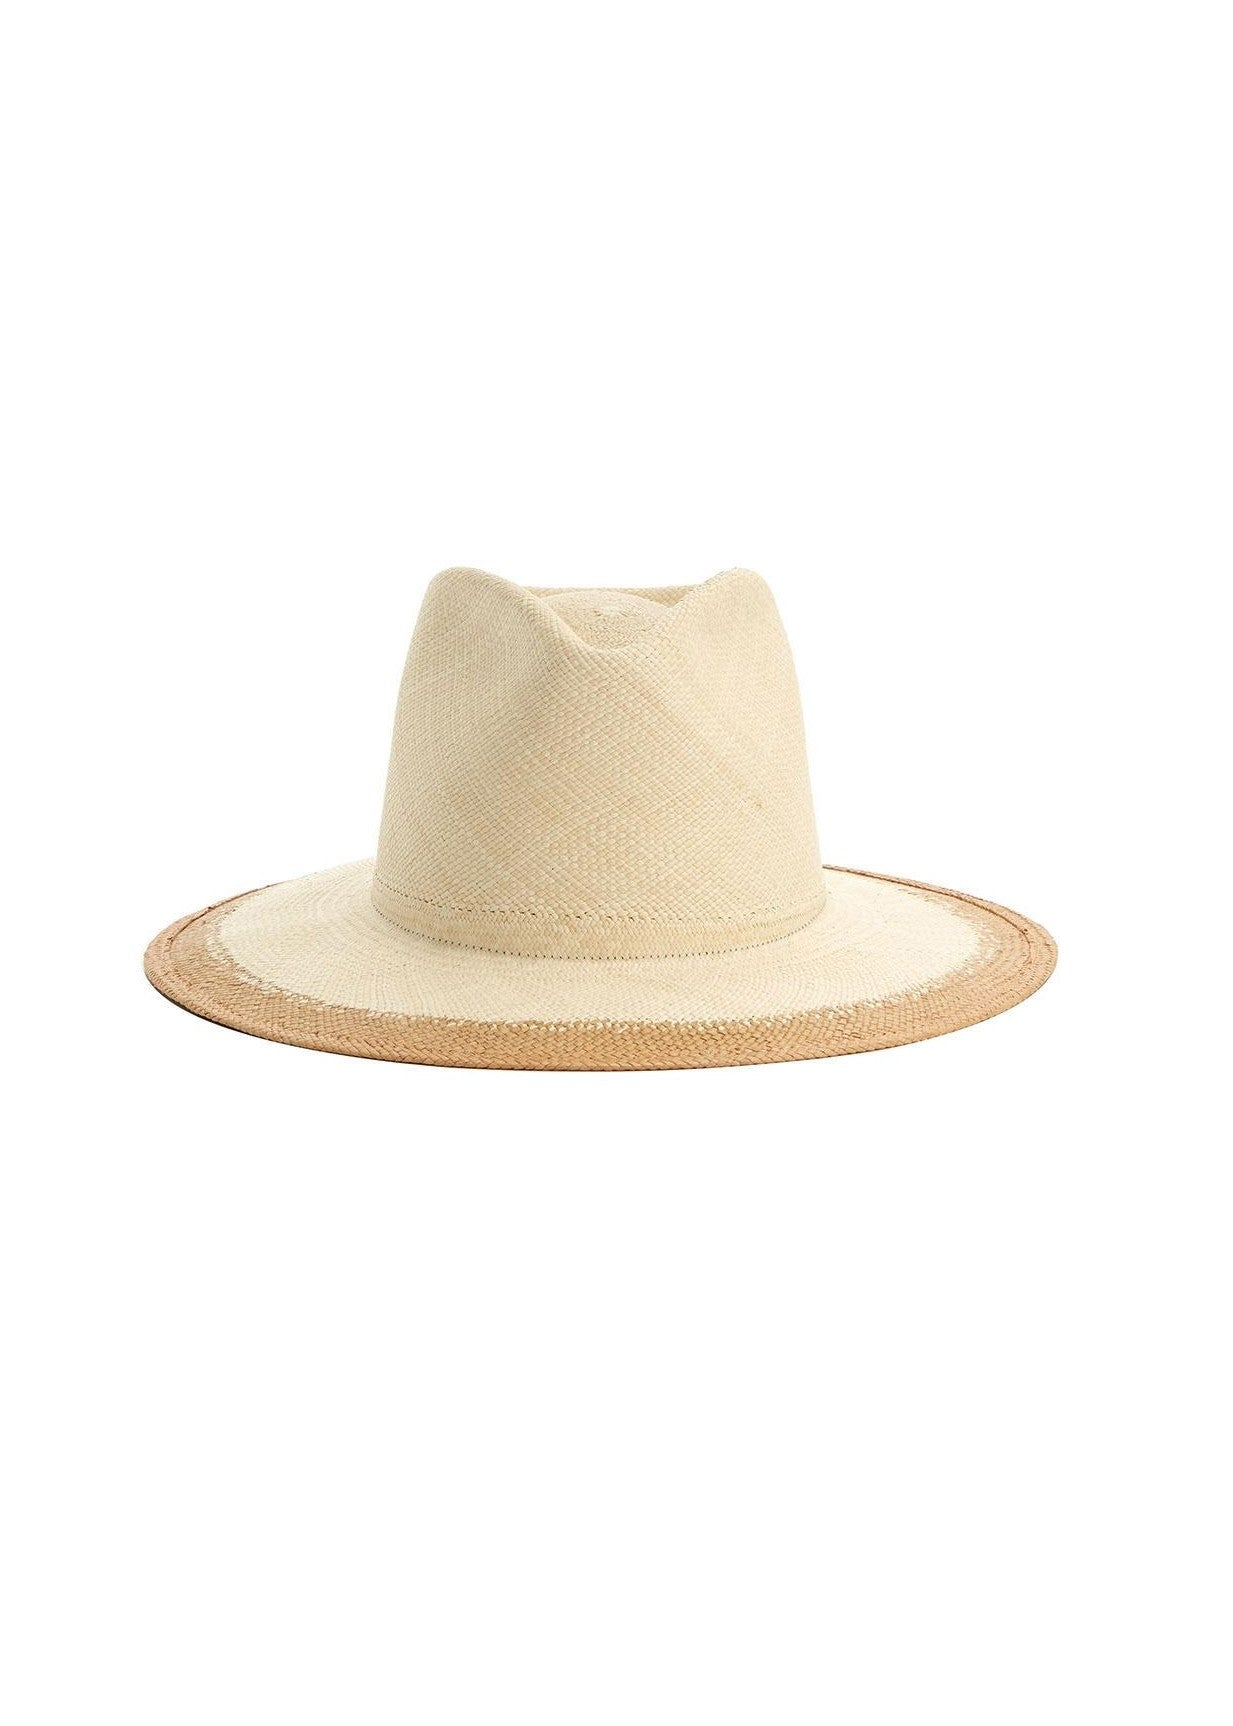 Janessa Leone Liana hat in natural